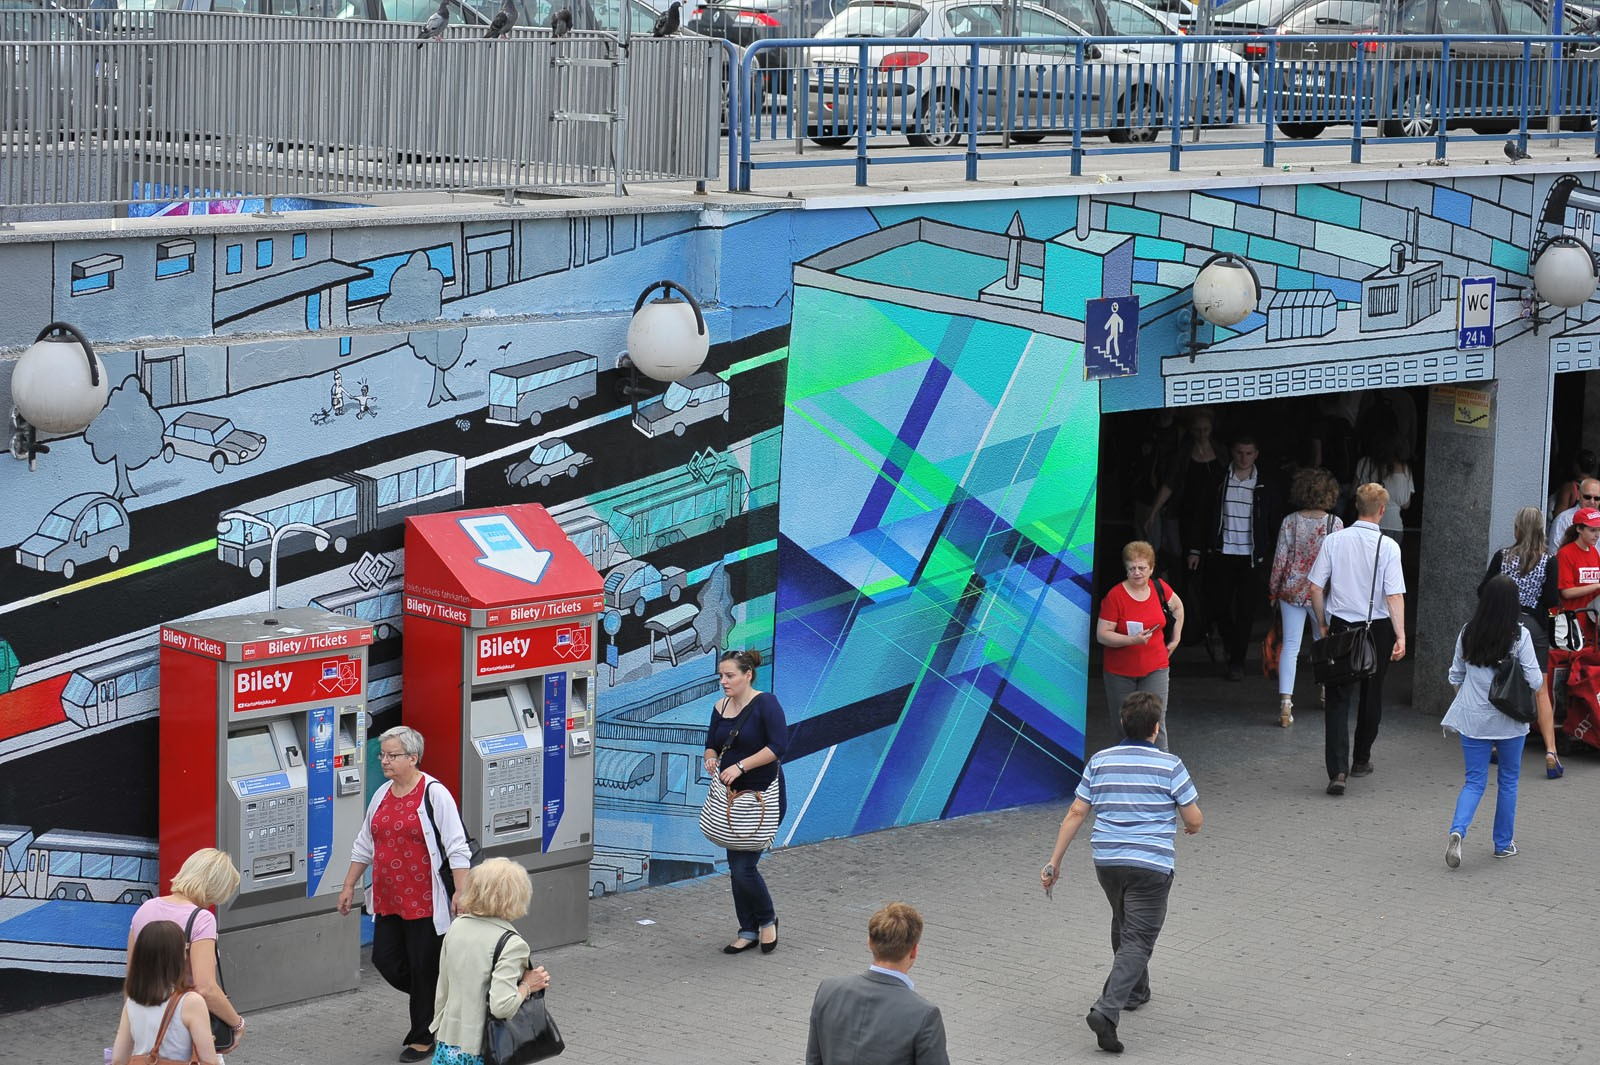 Samsung Tab walls on square at Centrum subway station in Warsaw | Long live color! | Portfolio